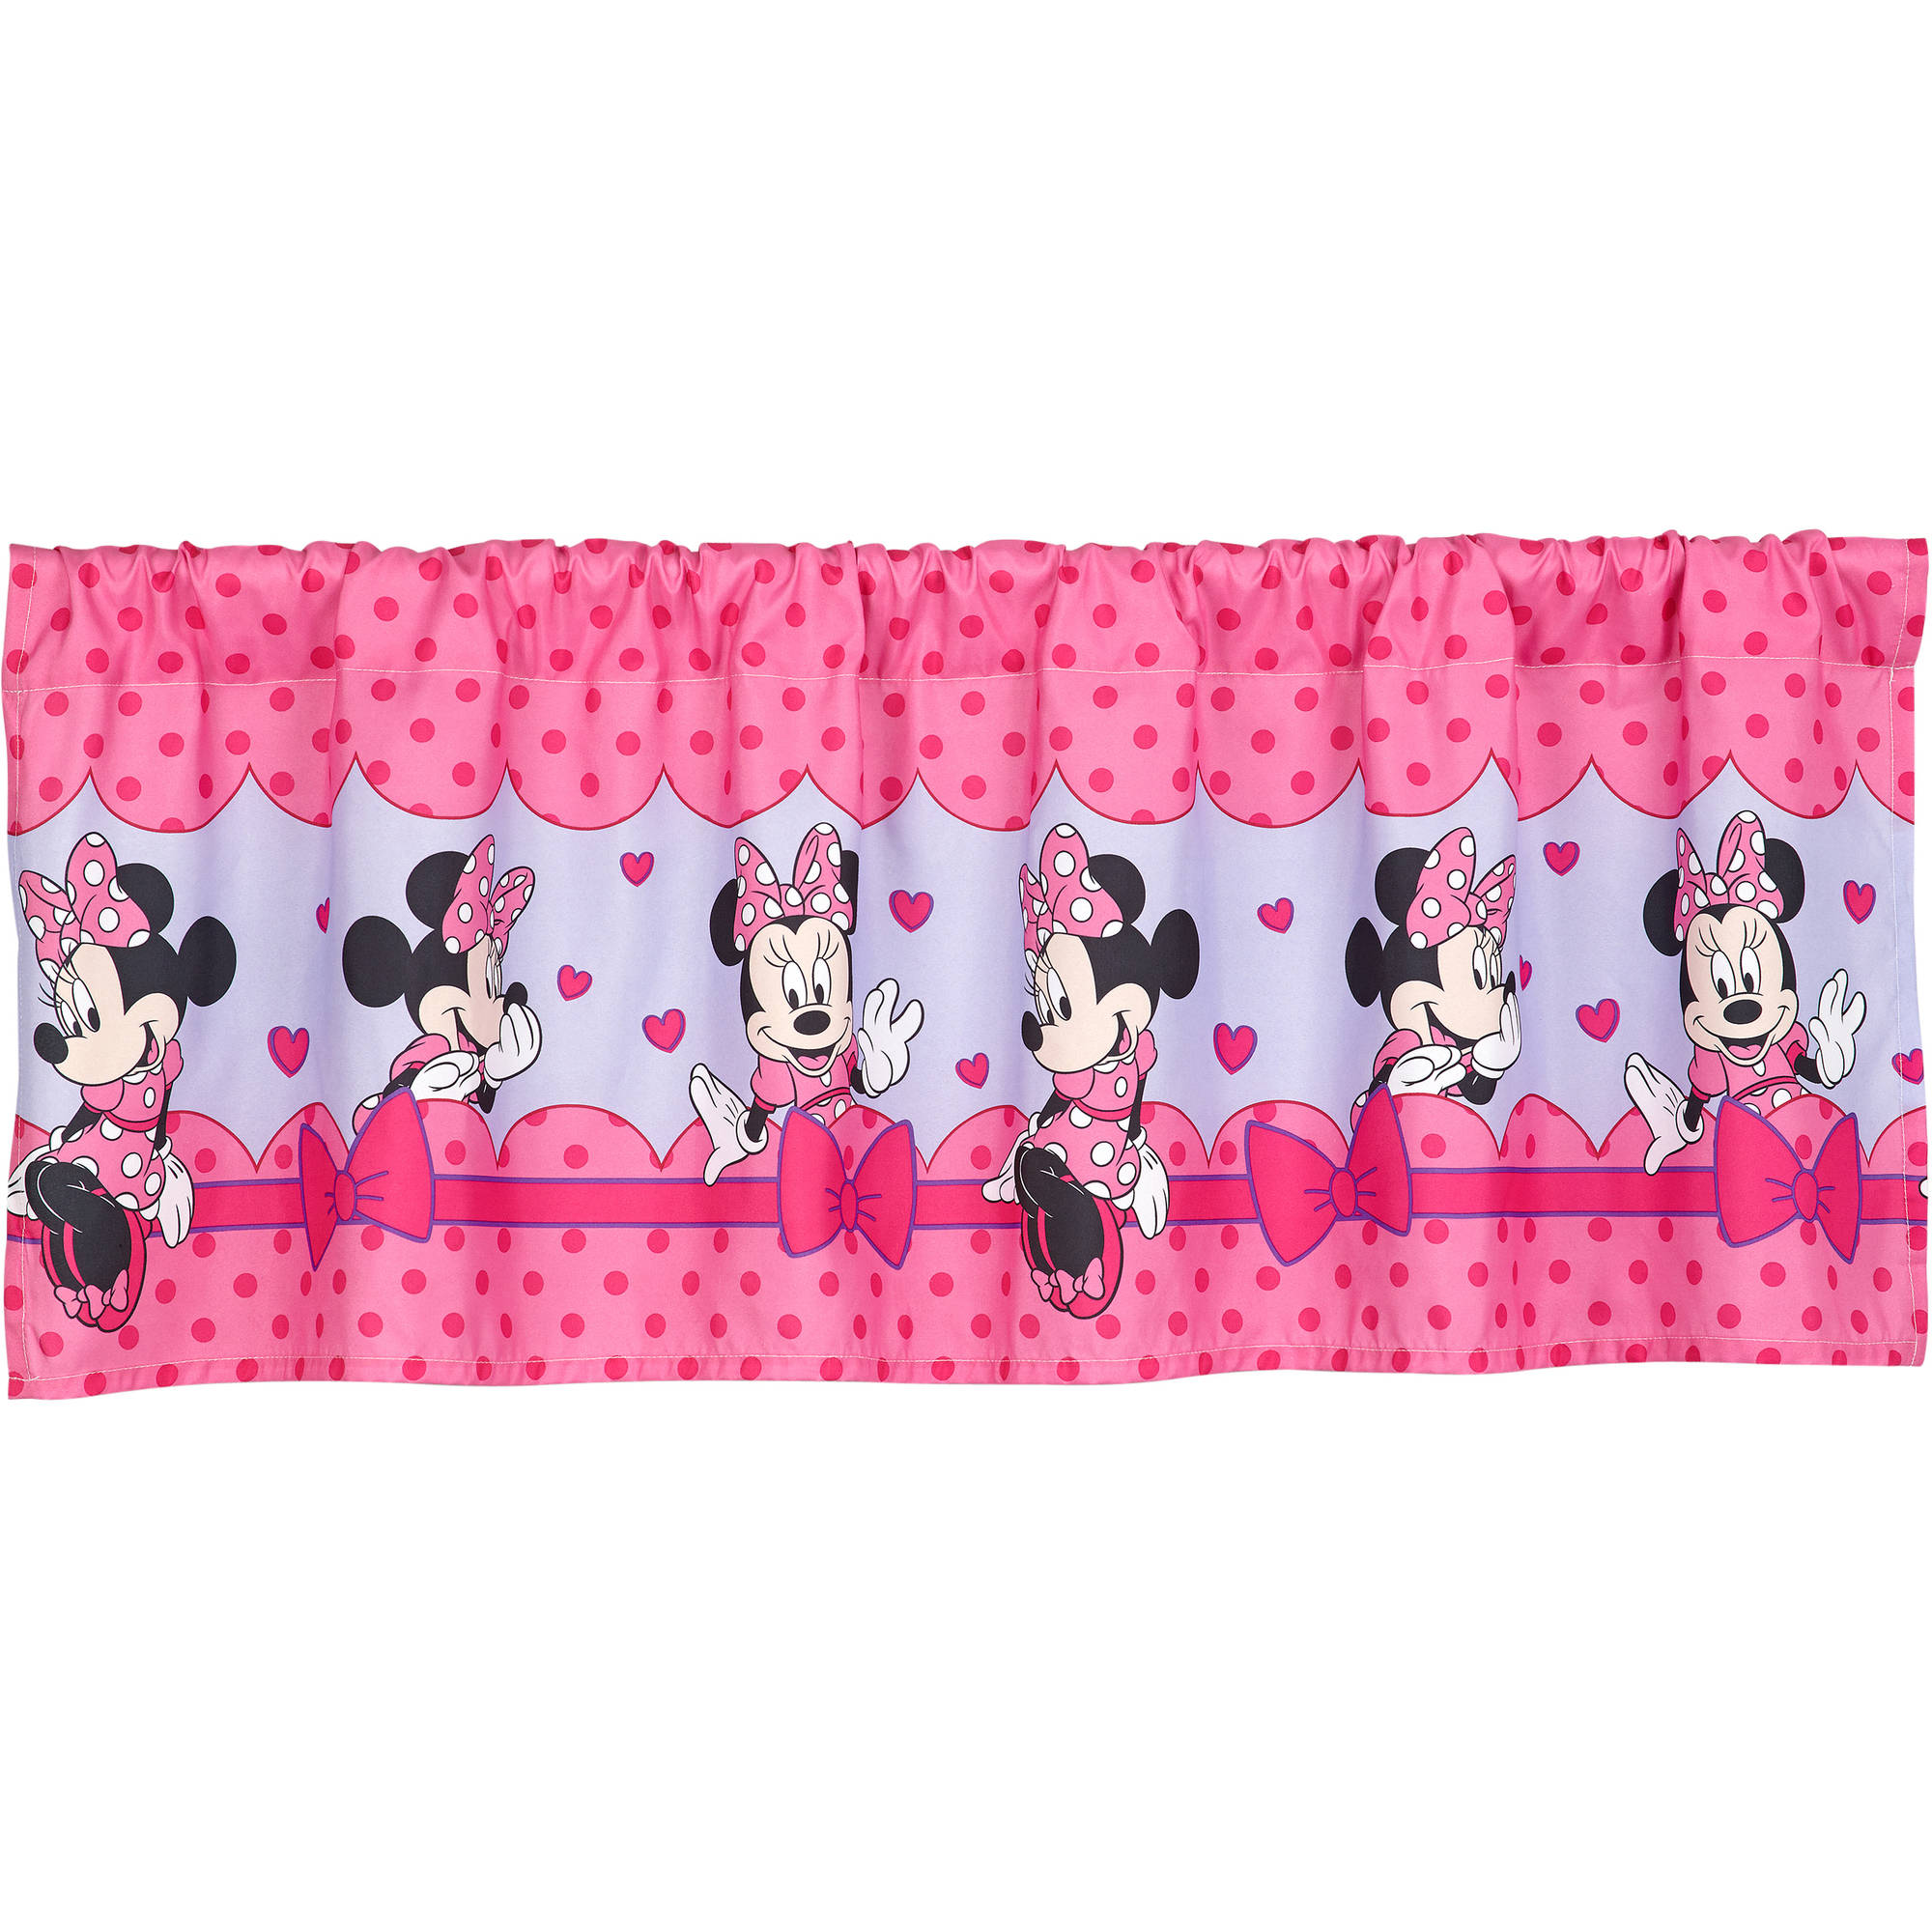 Disney Minnie Mouse Bow Power Window Valance